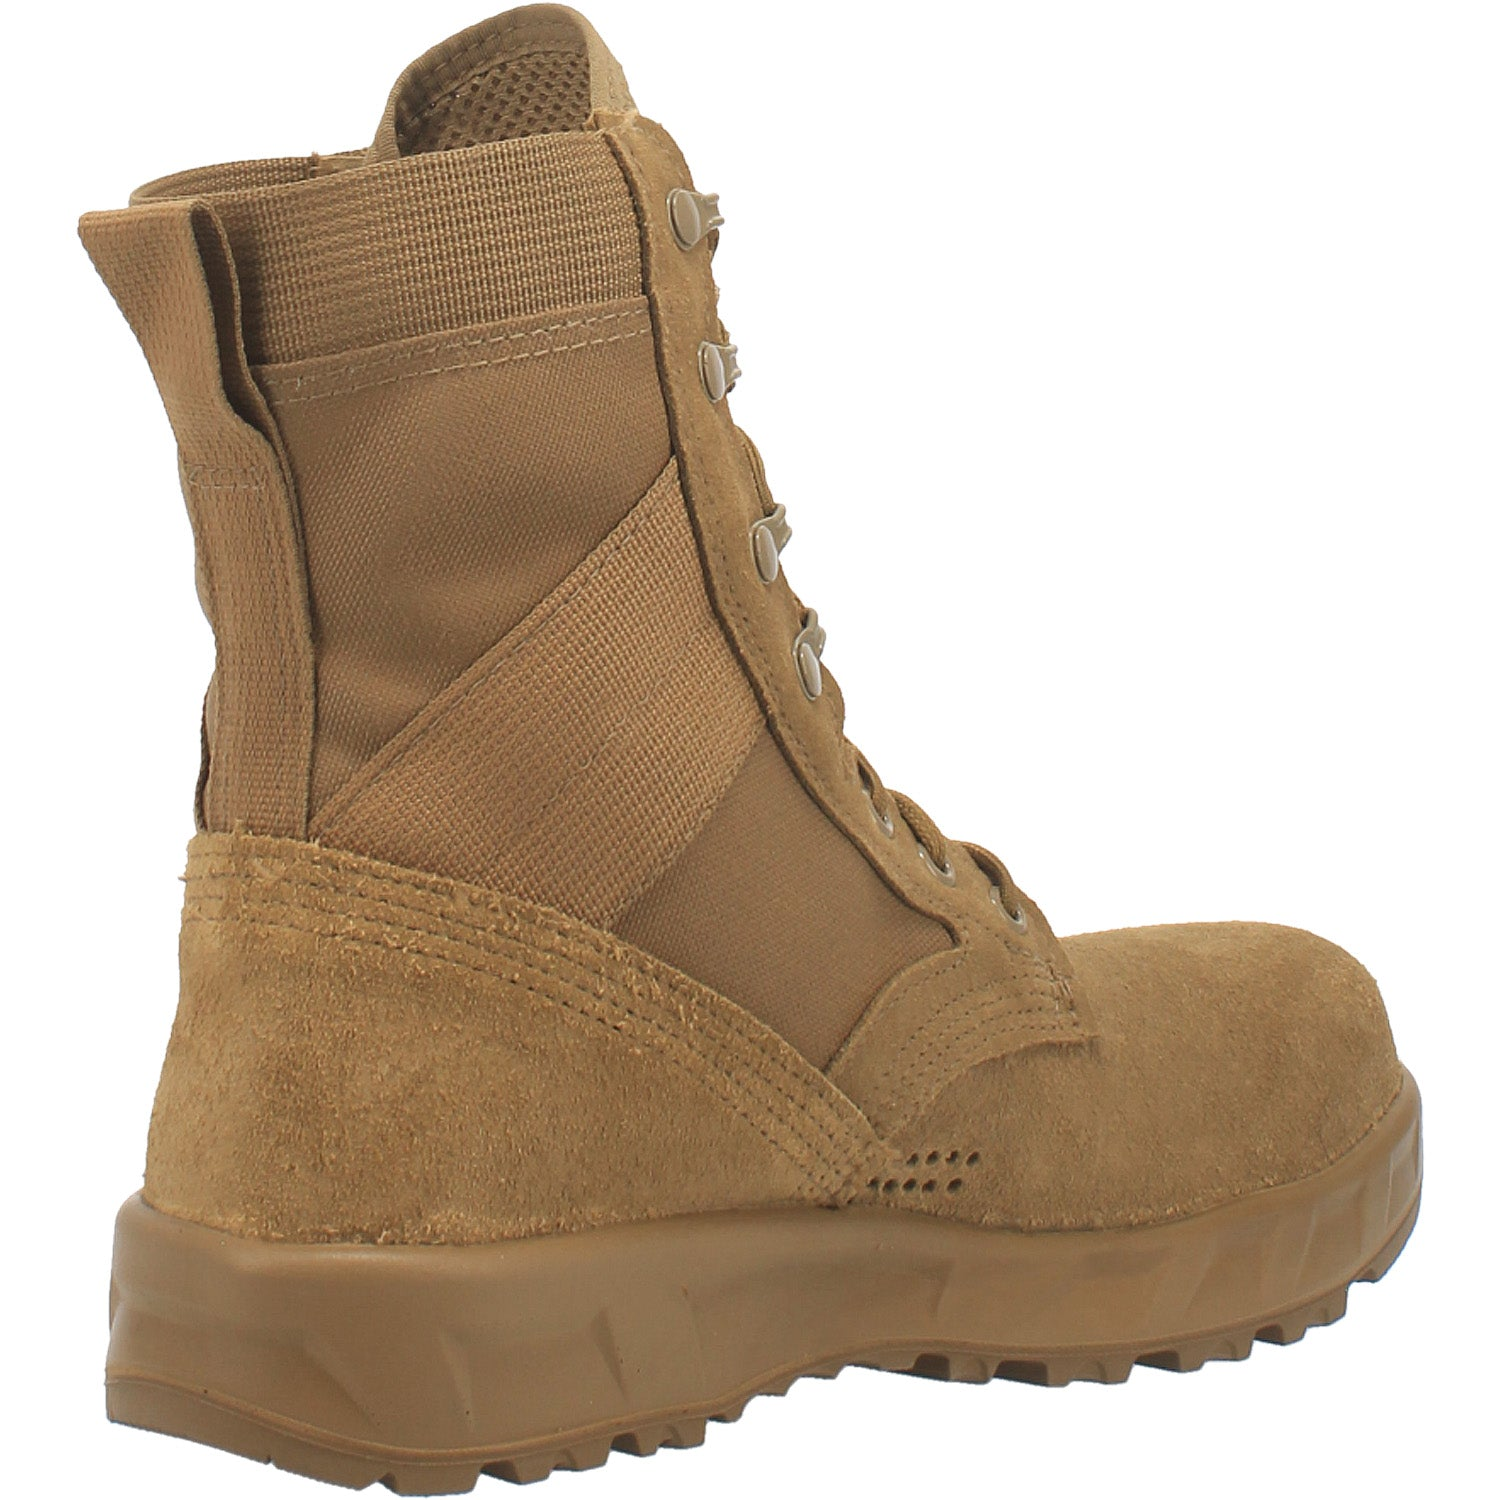 T2 Ultra Light Hot Weather Steel Toe Combat Boot 14940839608362